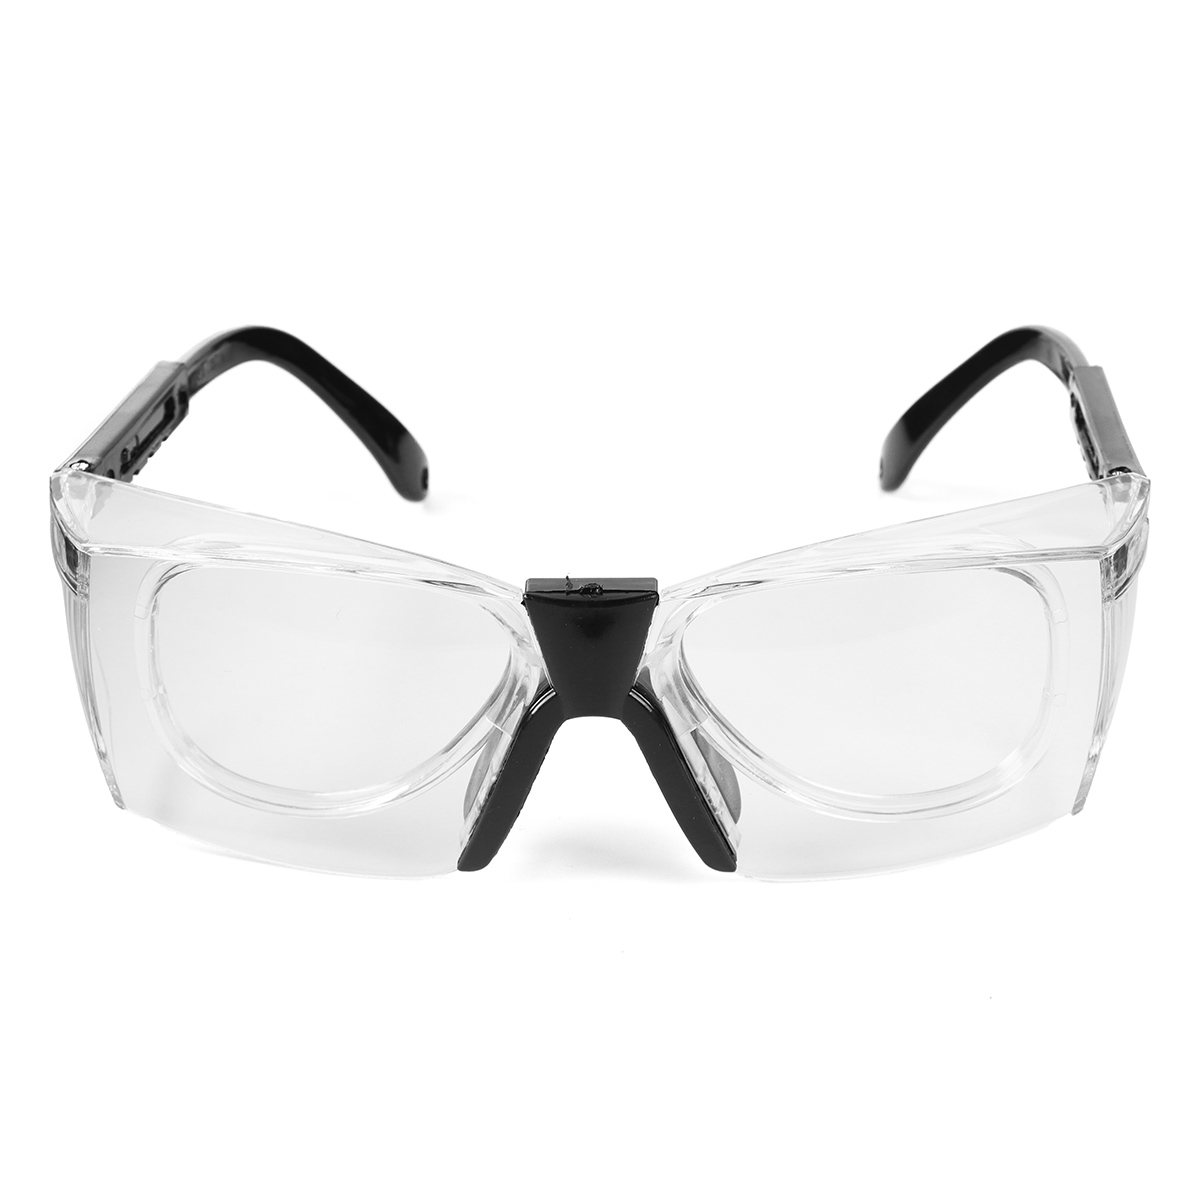 цена на NEW Safety Glasses Lab Eye Protection Protective Eyewear Clear Lens Workplace Safety Goggles Dustproof Windproof